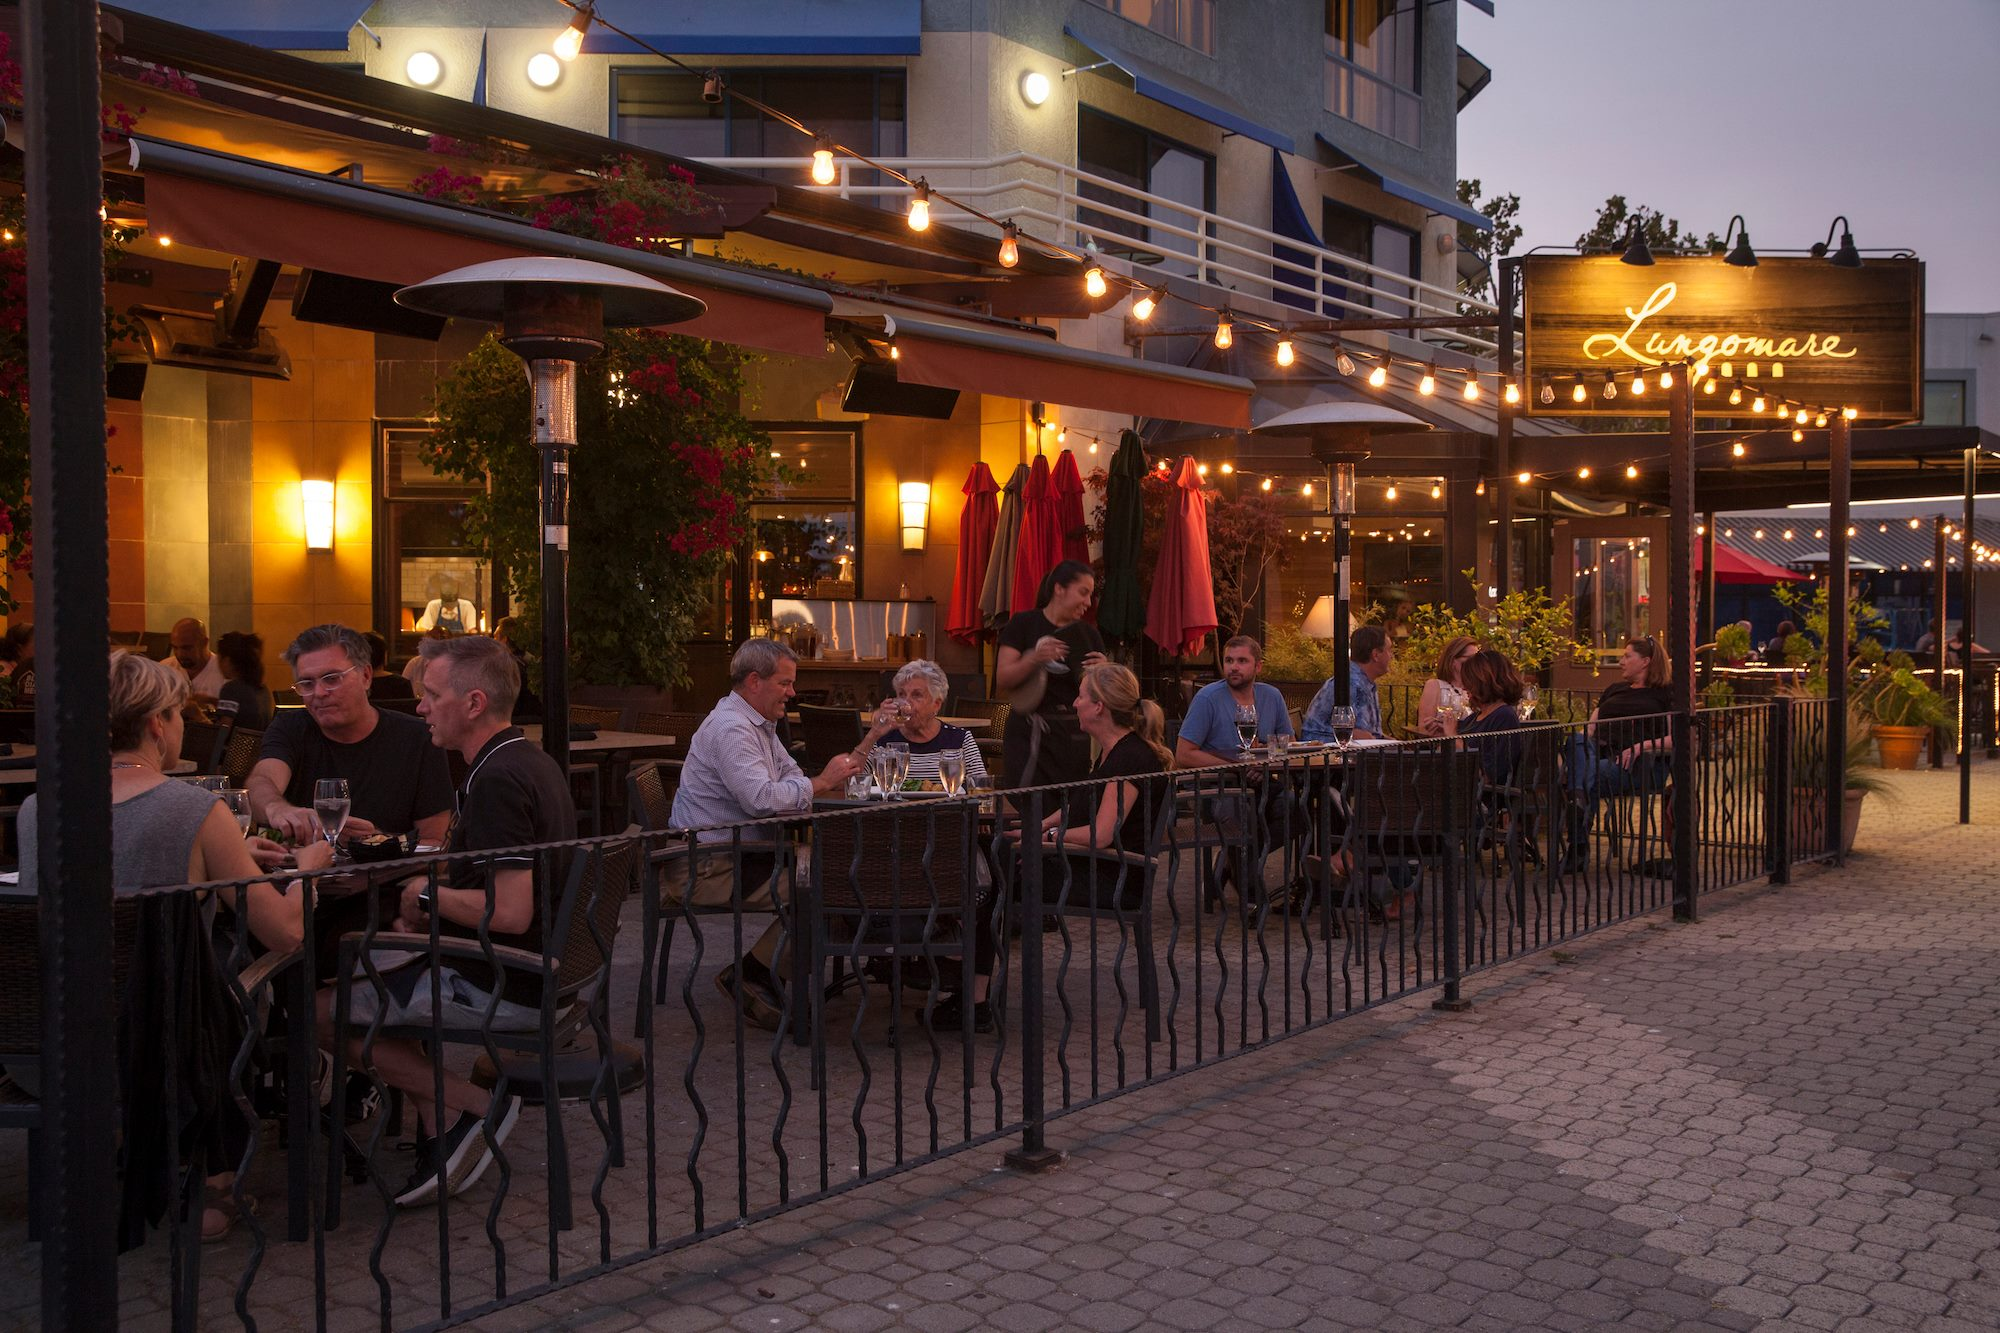 Lungomare's outdoor seating at night